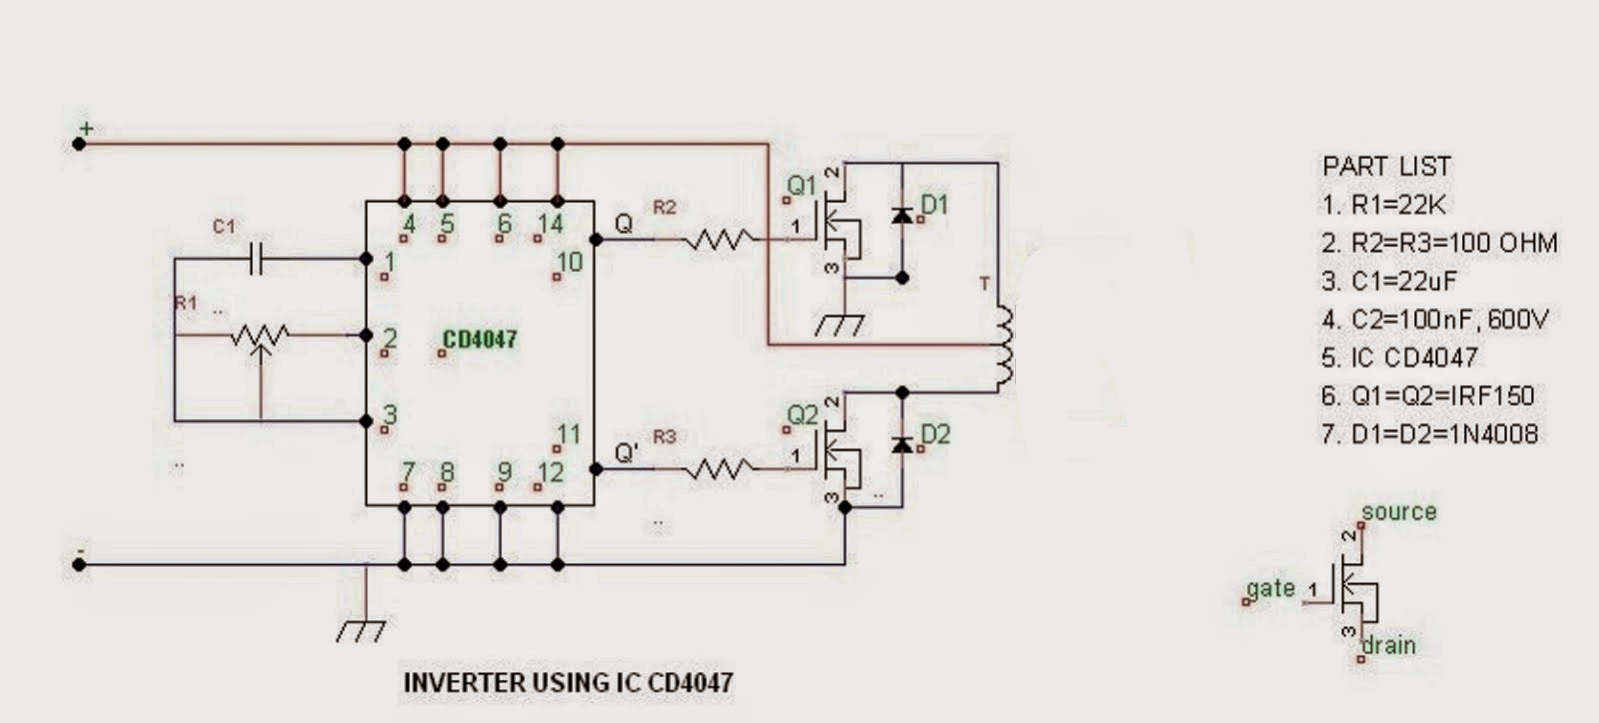 Making A Flynn Motor Circuit Diagram Attached Search Gain Control Amplifier Amplifiercircuit To The Positive While Ends Of Coils Wires Are Connected With Mosfet Drain Rpm Can Be Controlled Aid Shown Pot